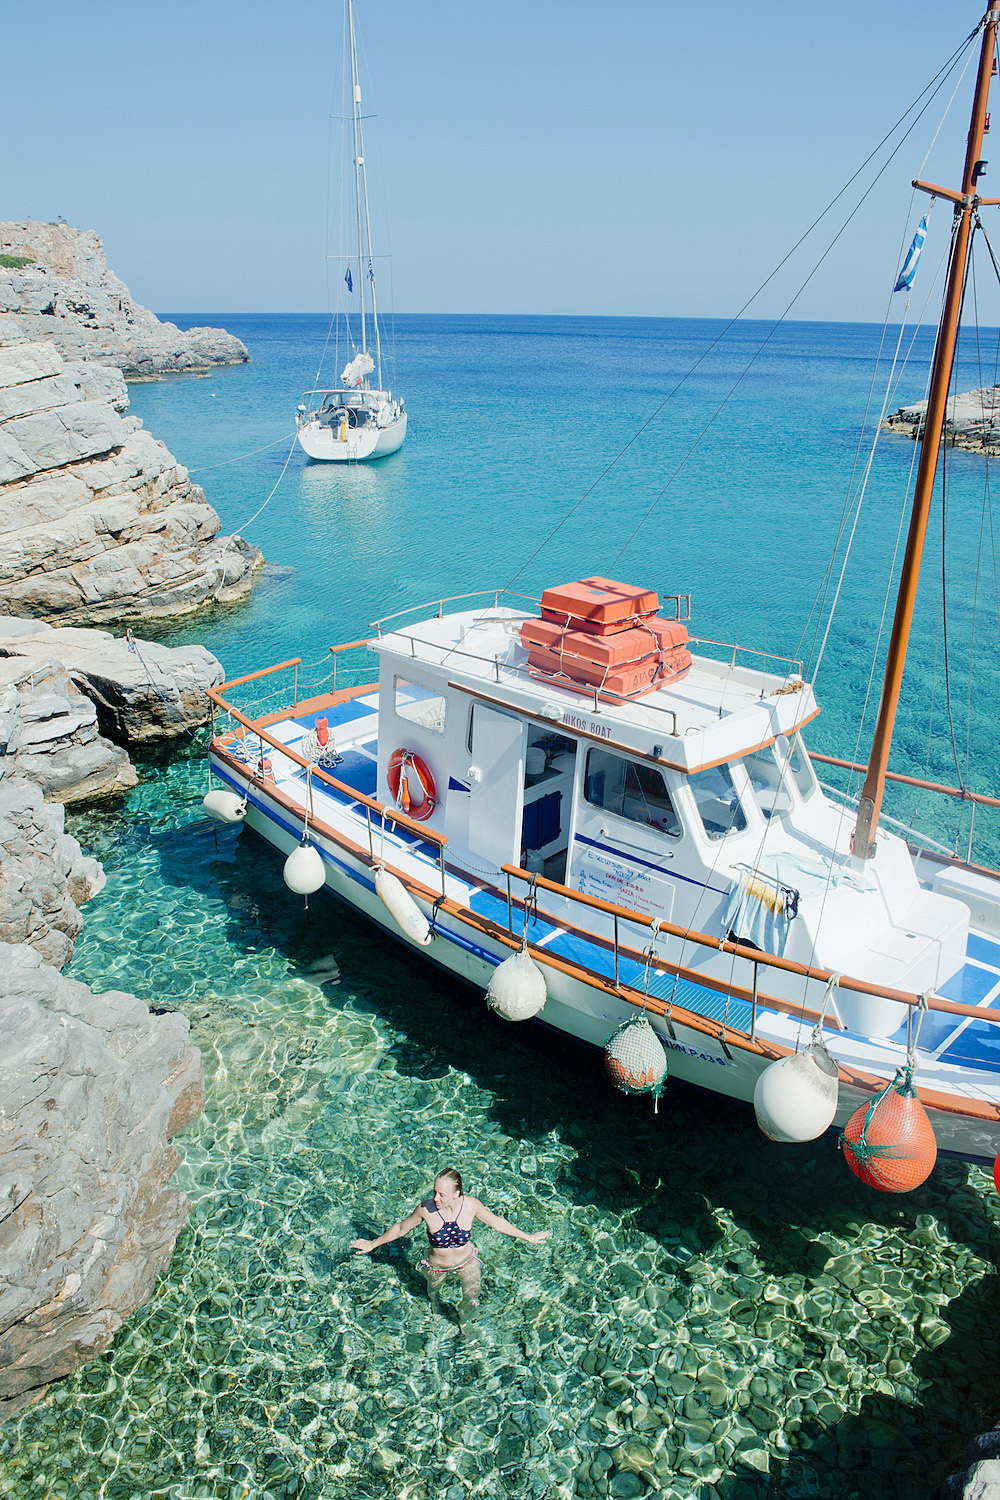 10 things to do on karpathos greece | www.thegoldenbun.com